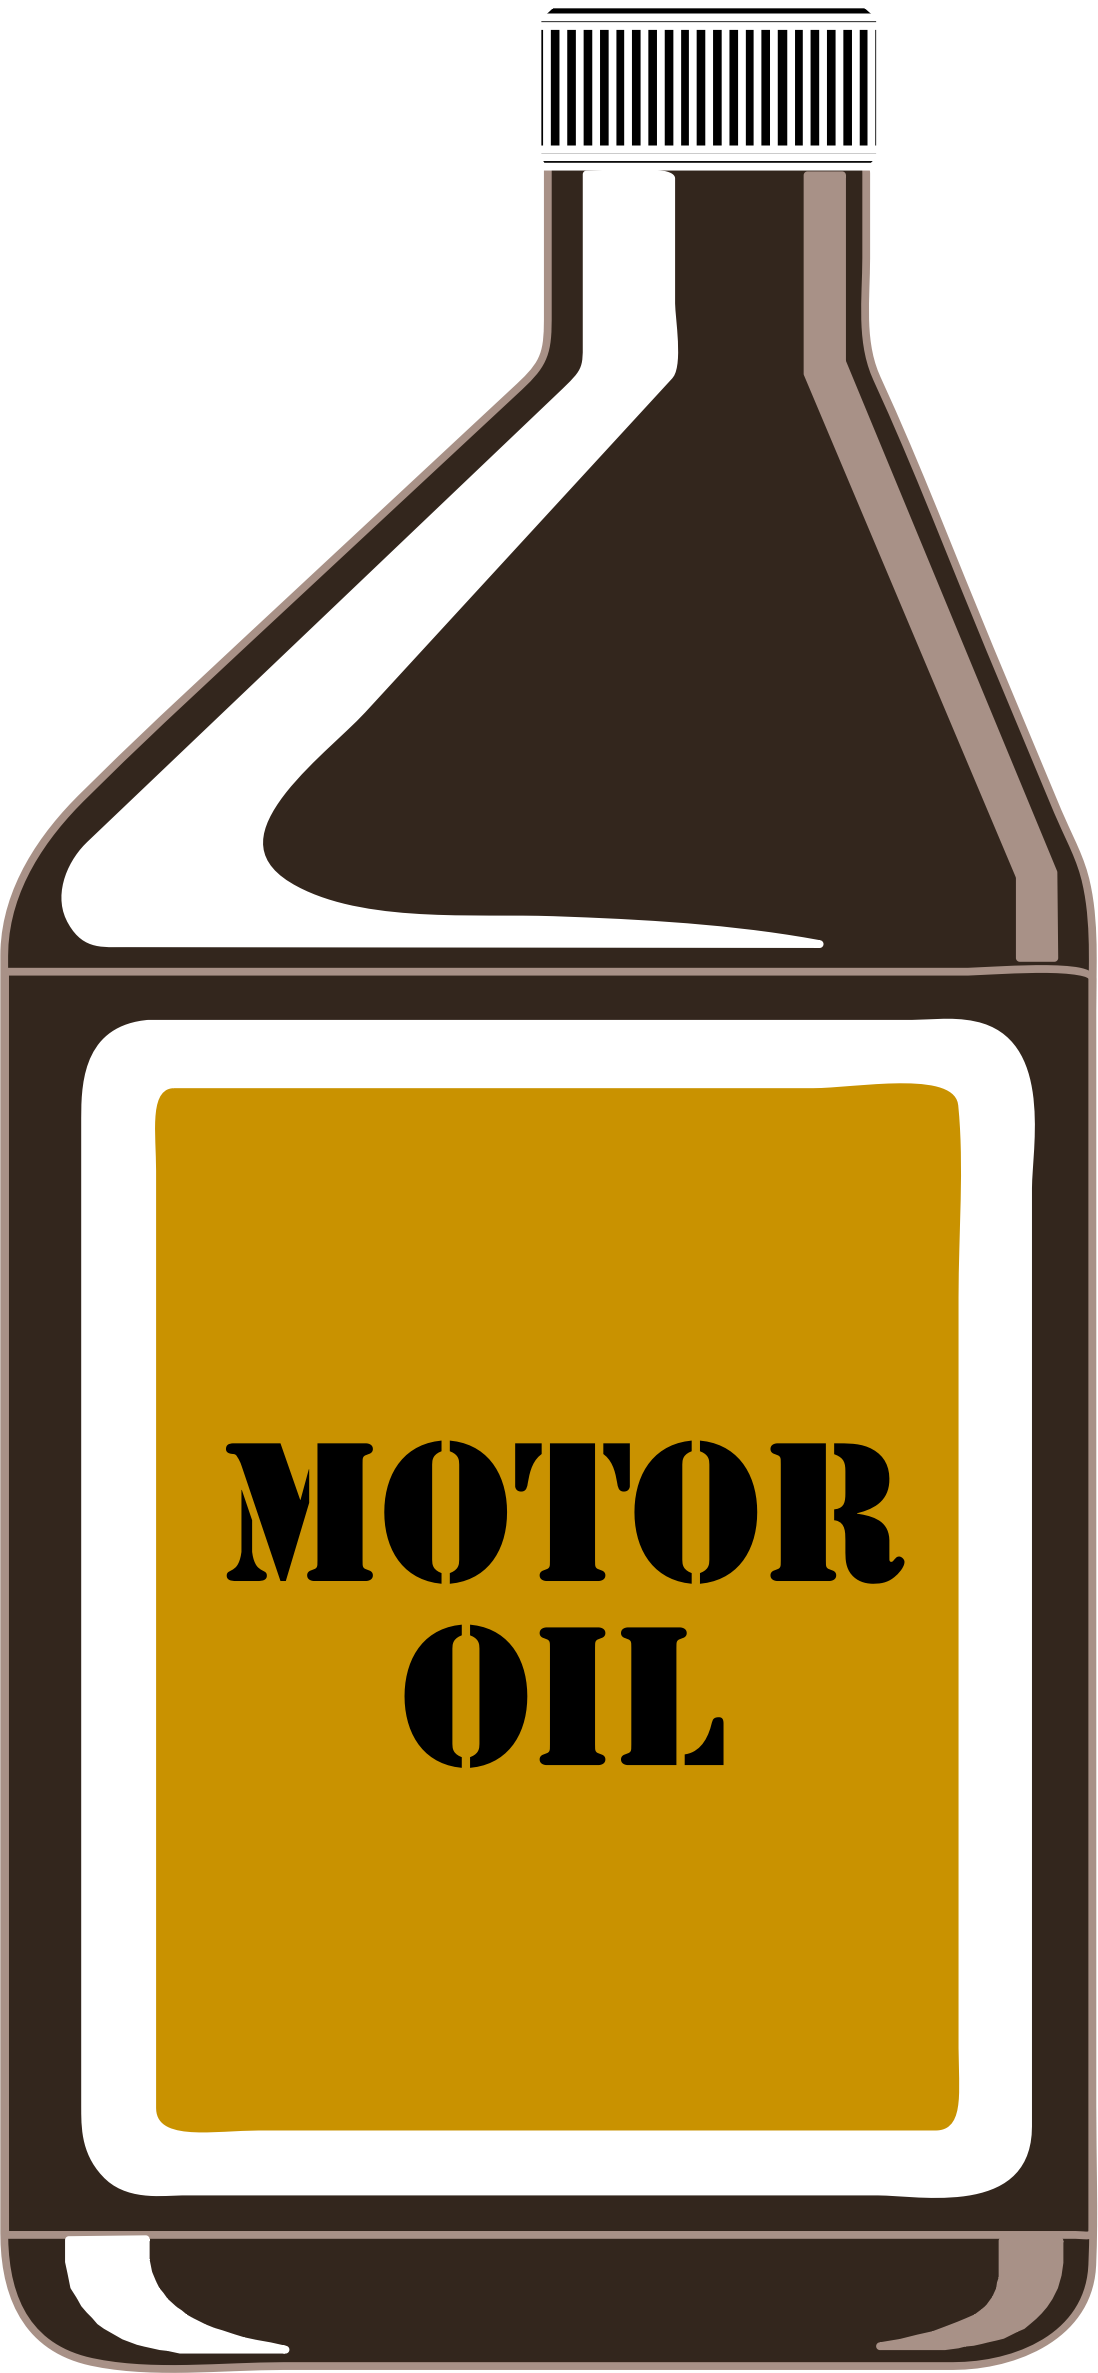 collection of motor. Oil clipart oil tin